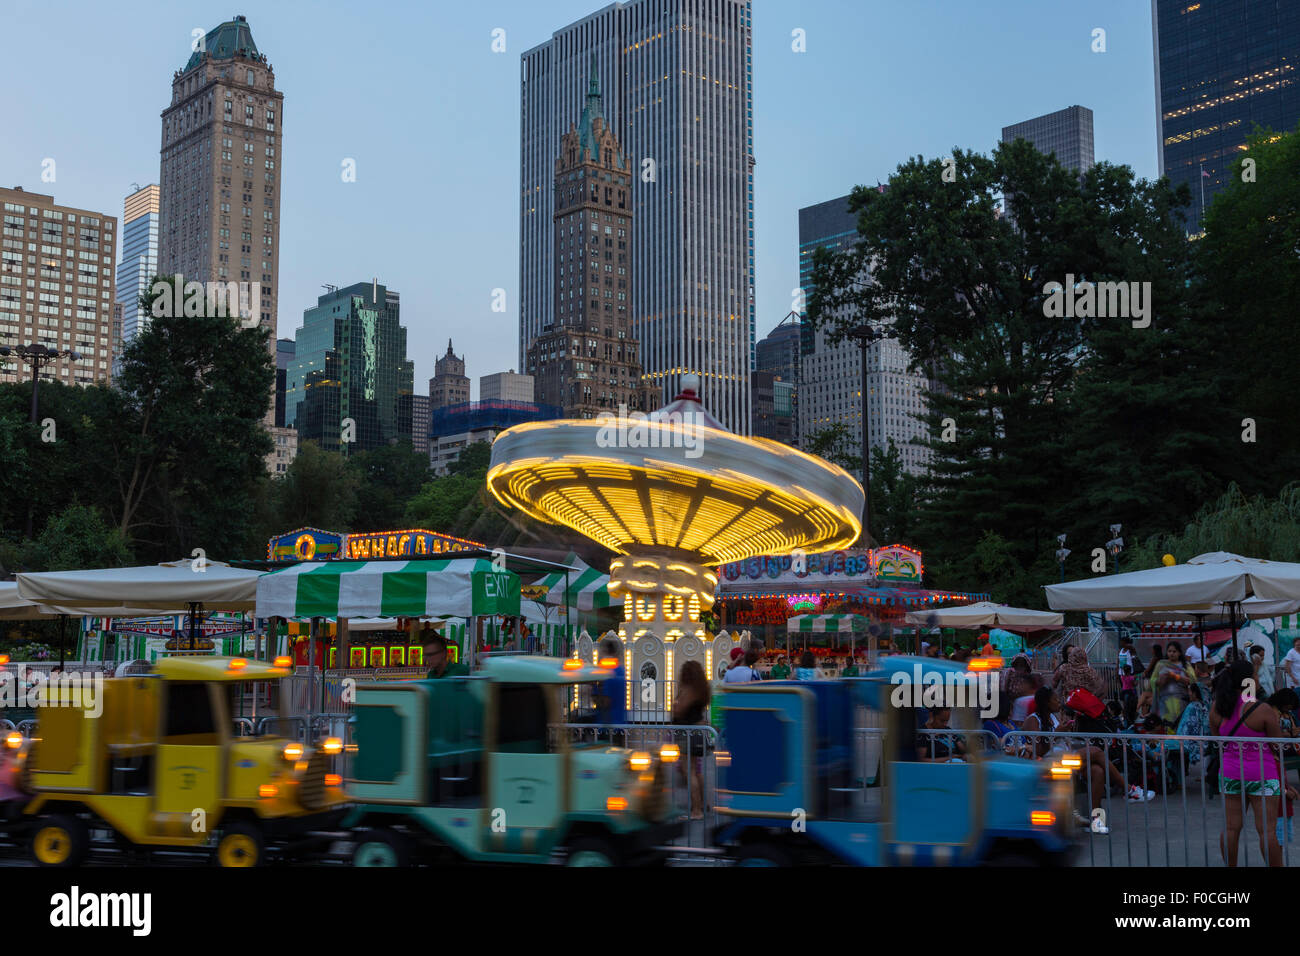 Victorian Gardens Carnival Rides In Central Park With Skyline In Stock Photo 86328309 Alamy